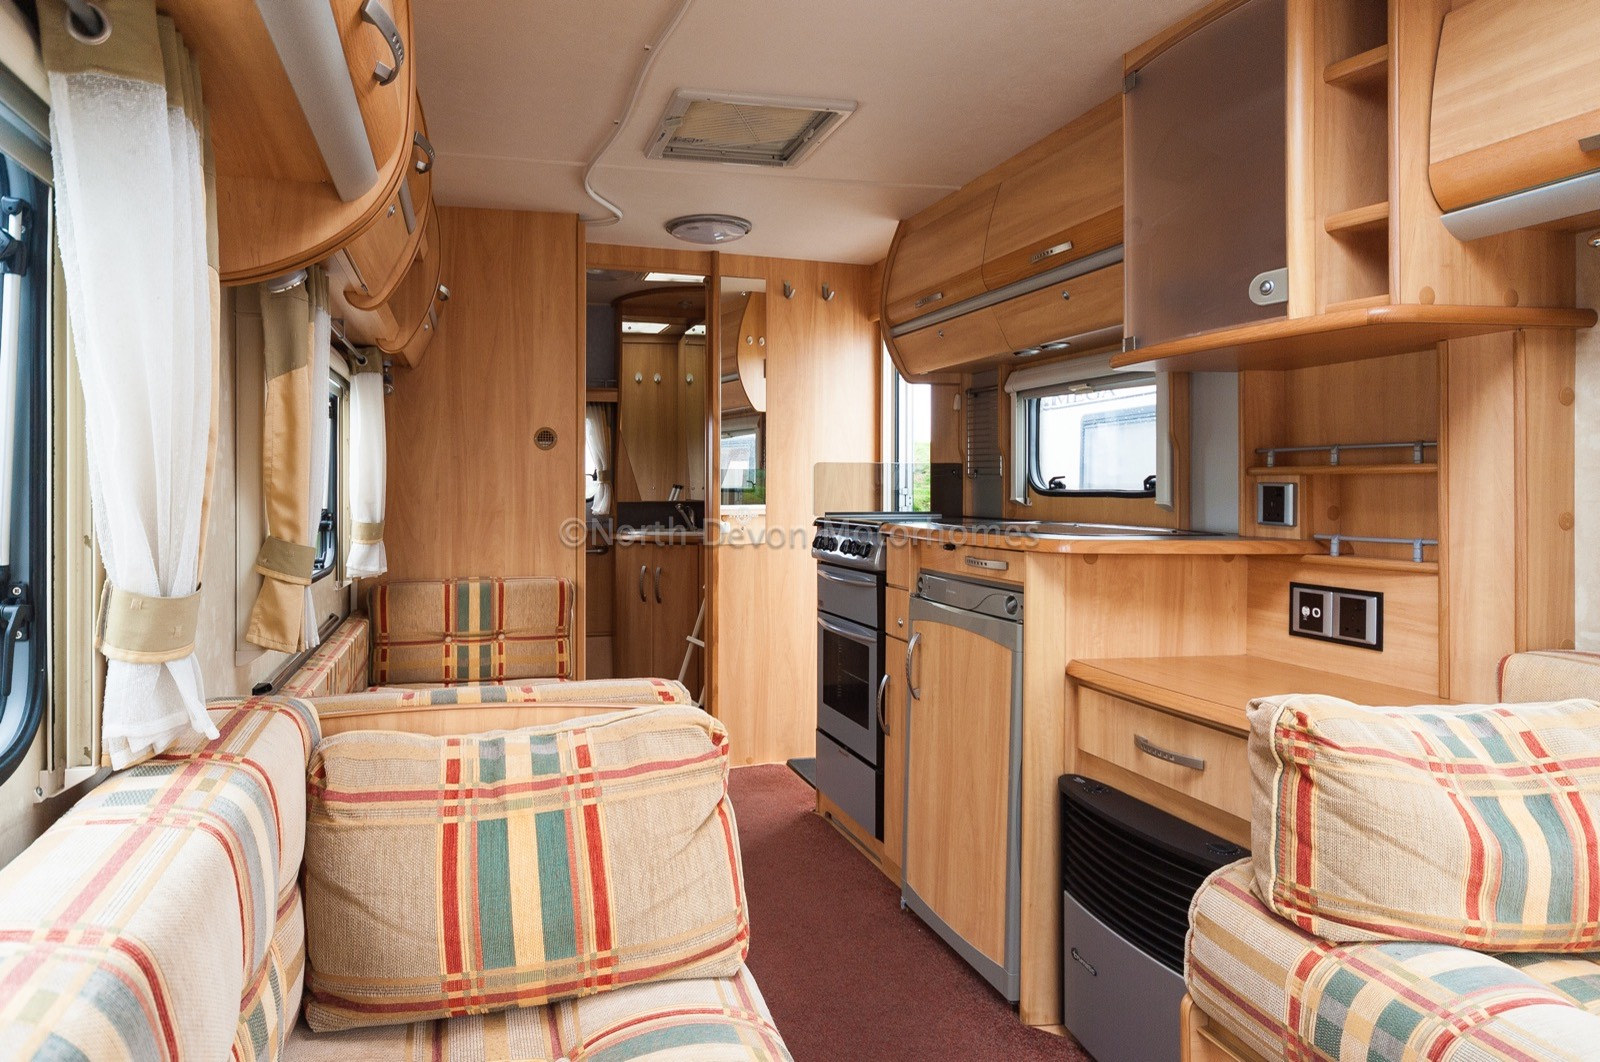 Sold 2003 Sterling Eccles Moonstone 4 Berth End